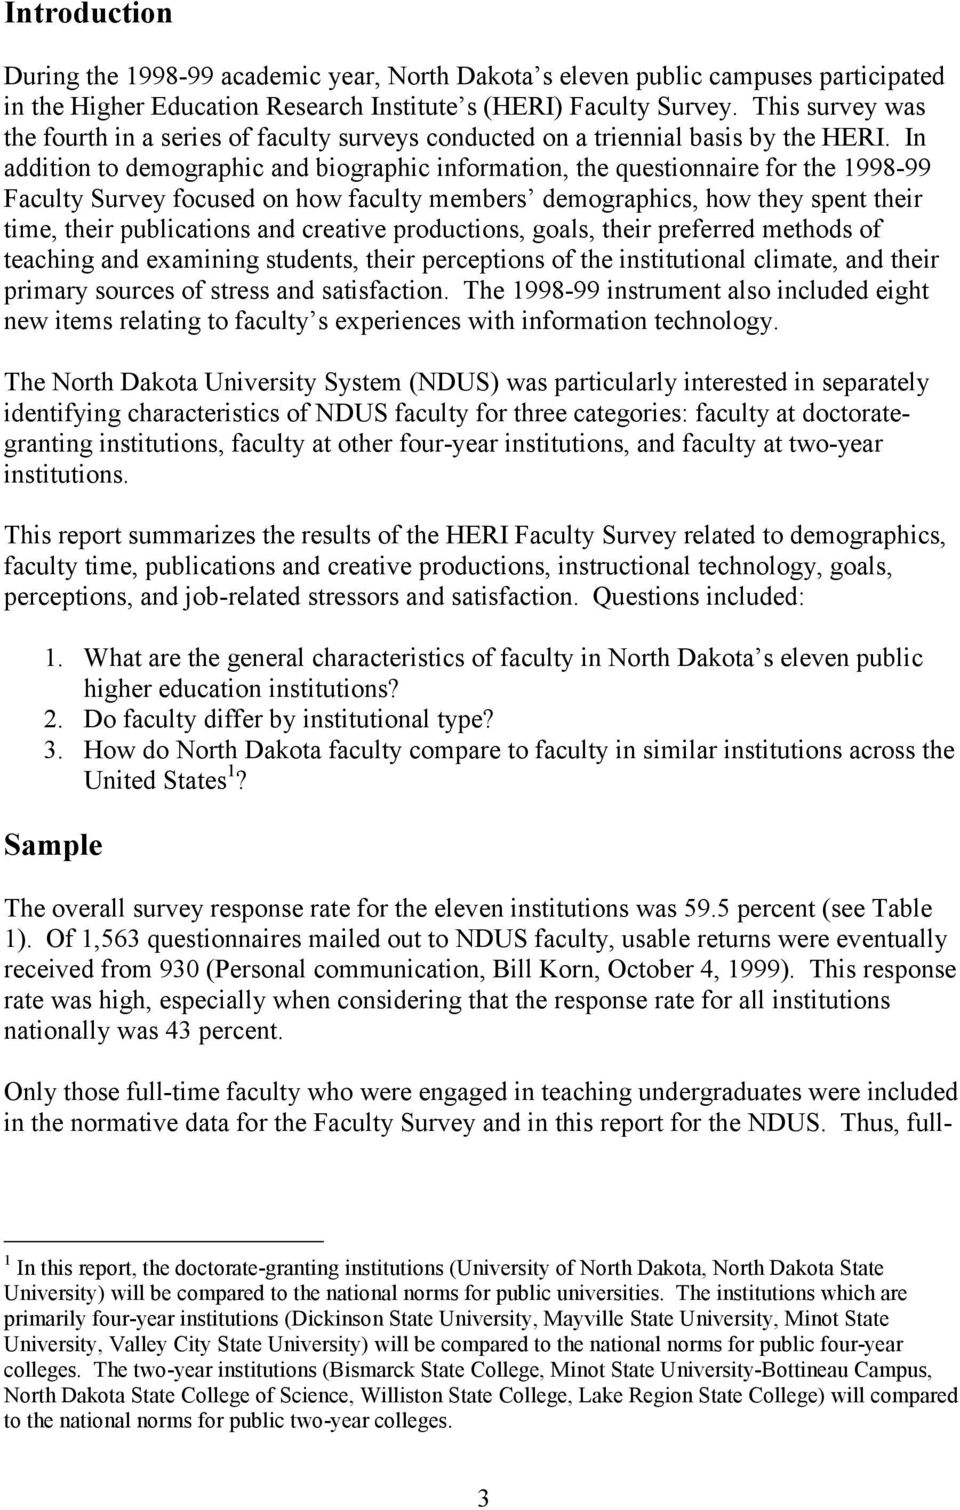 In addition to demographic and biographic information, the questionnaire for the 1998-99 Faculty Survey focused on how faculty members demographics, how they spent their time, their publications and